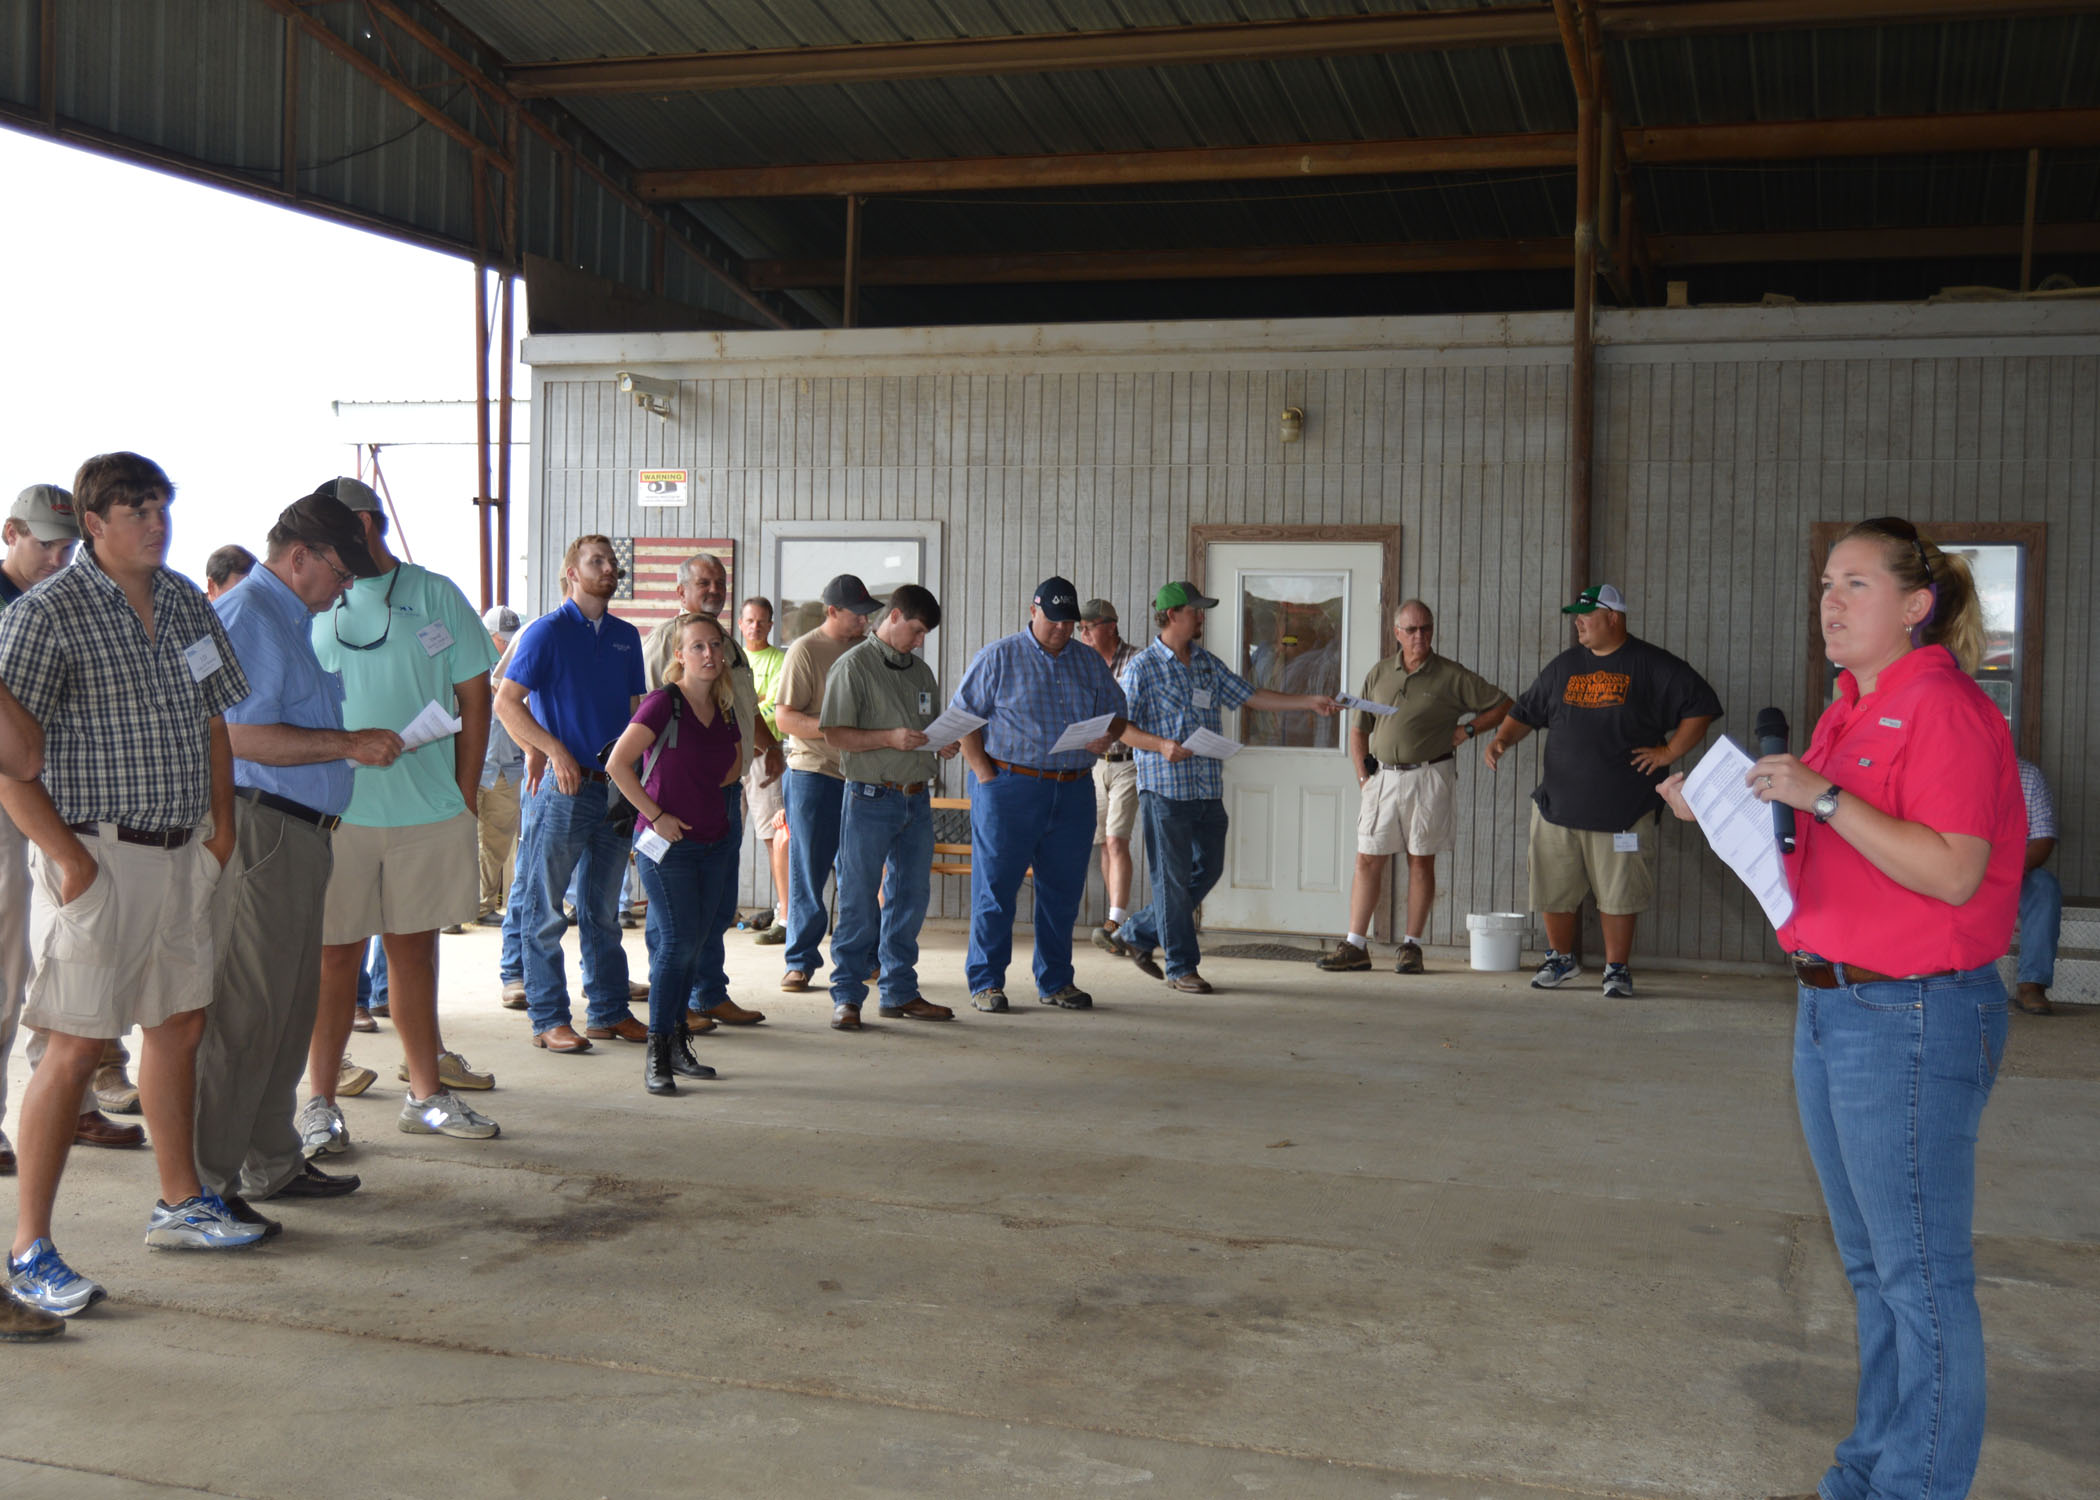 Cover crops, weed control featured at field day